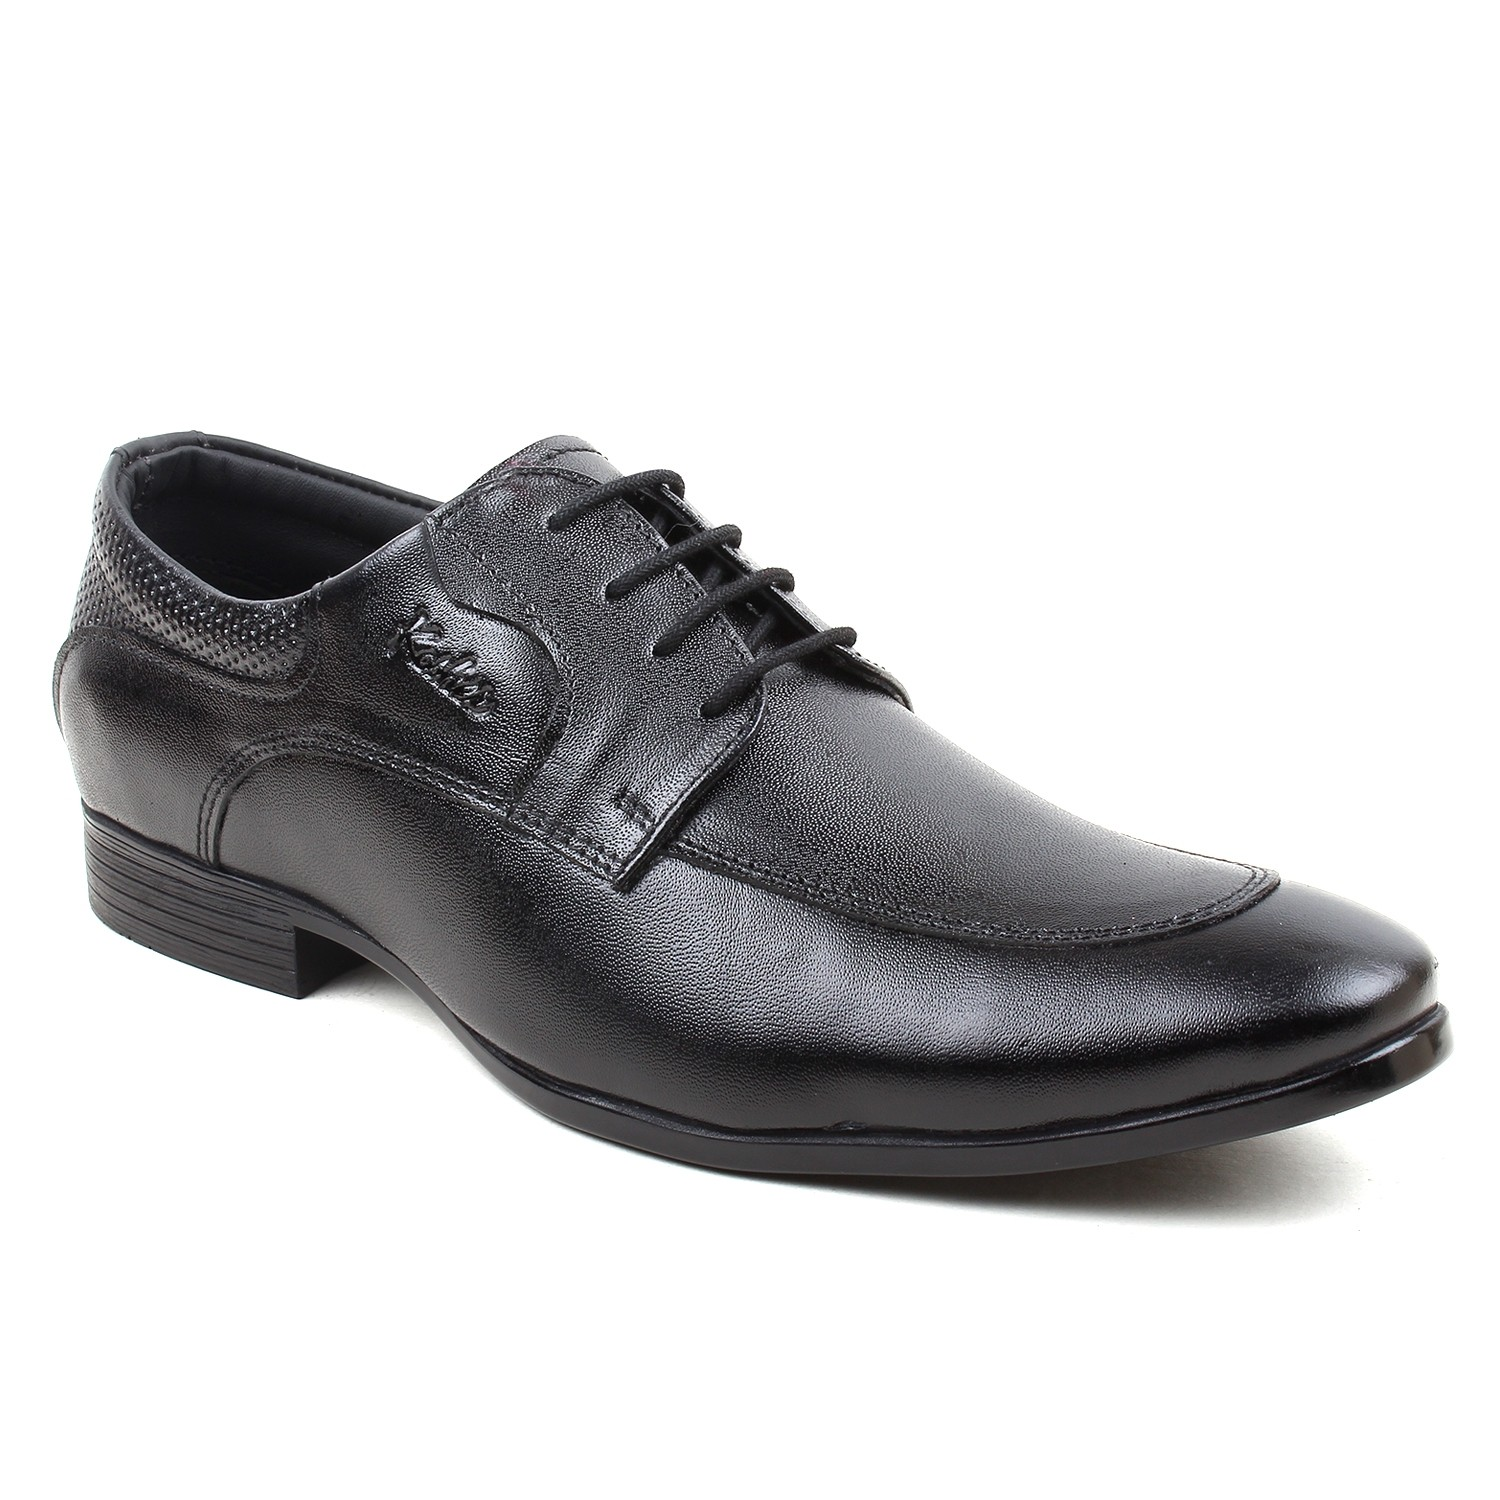 Kosher Leather Black Shoe Men